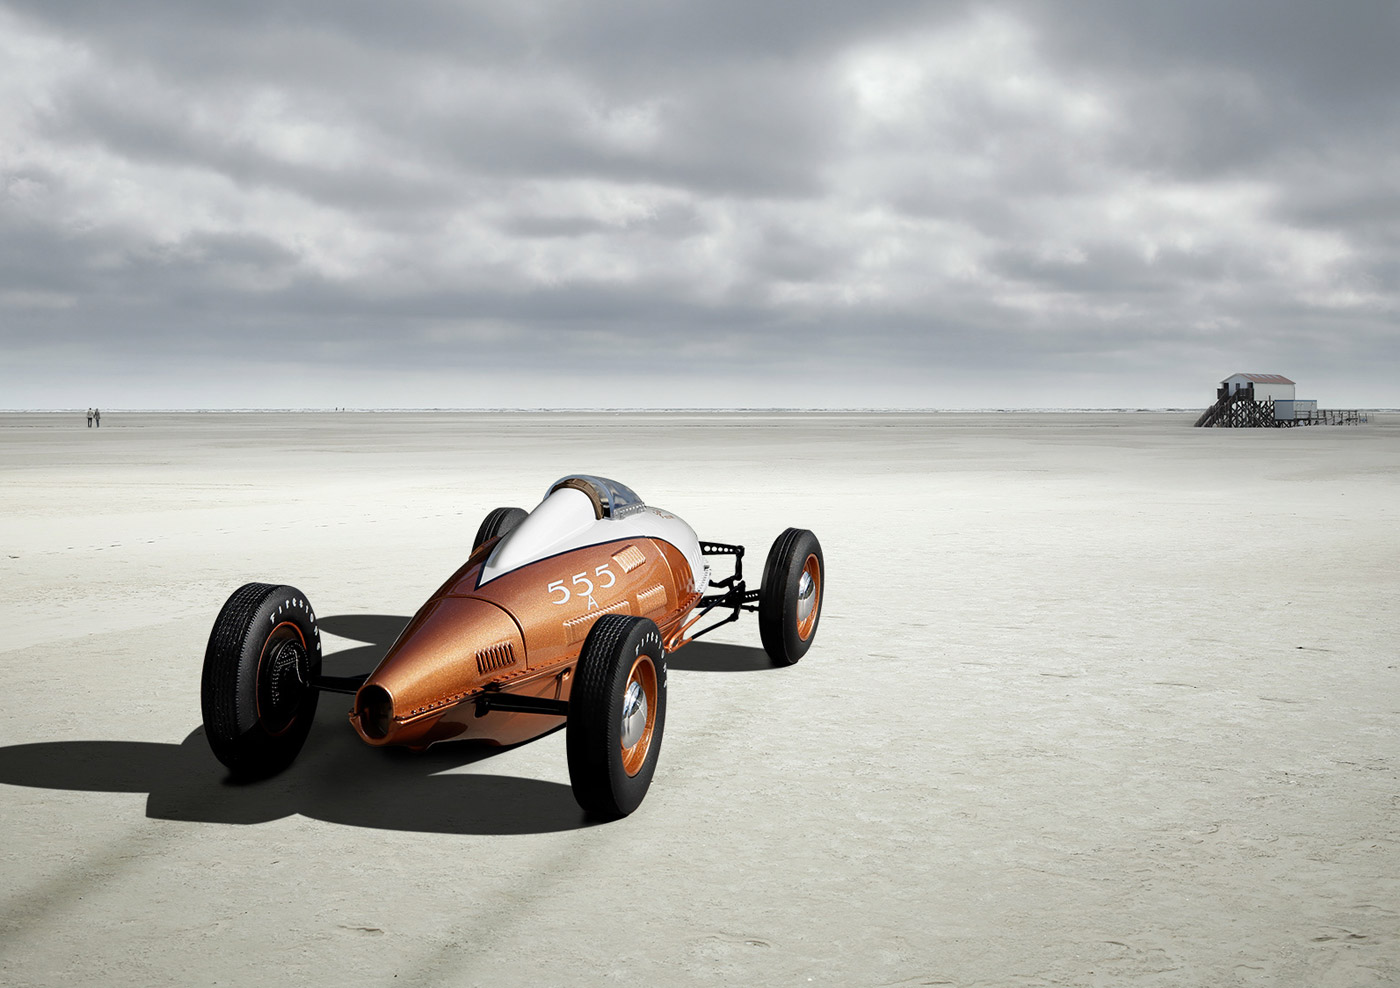 Classic Car Photography By Damian Szmurlo Daily Design Inspiration For Creatives Inspiration Grid